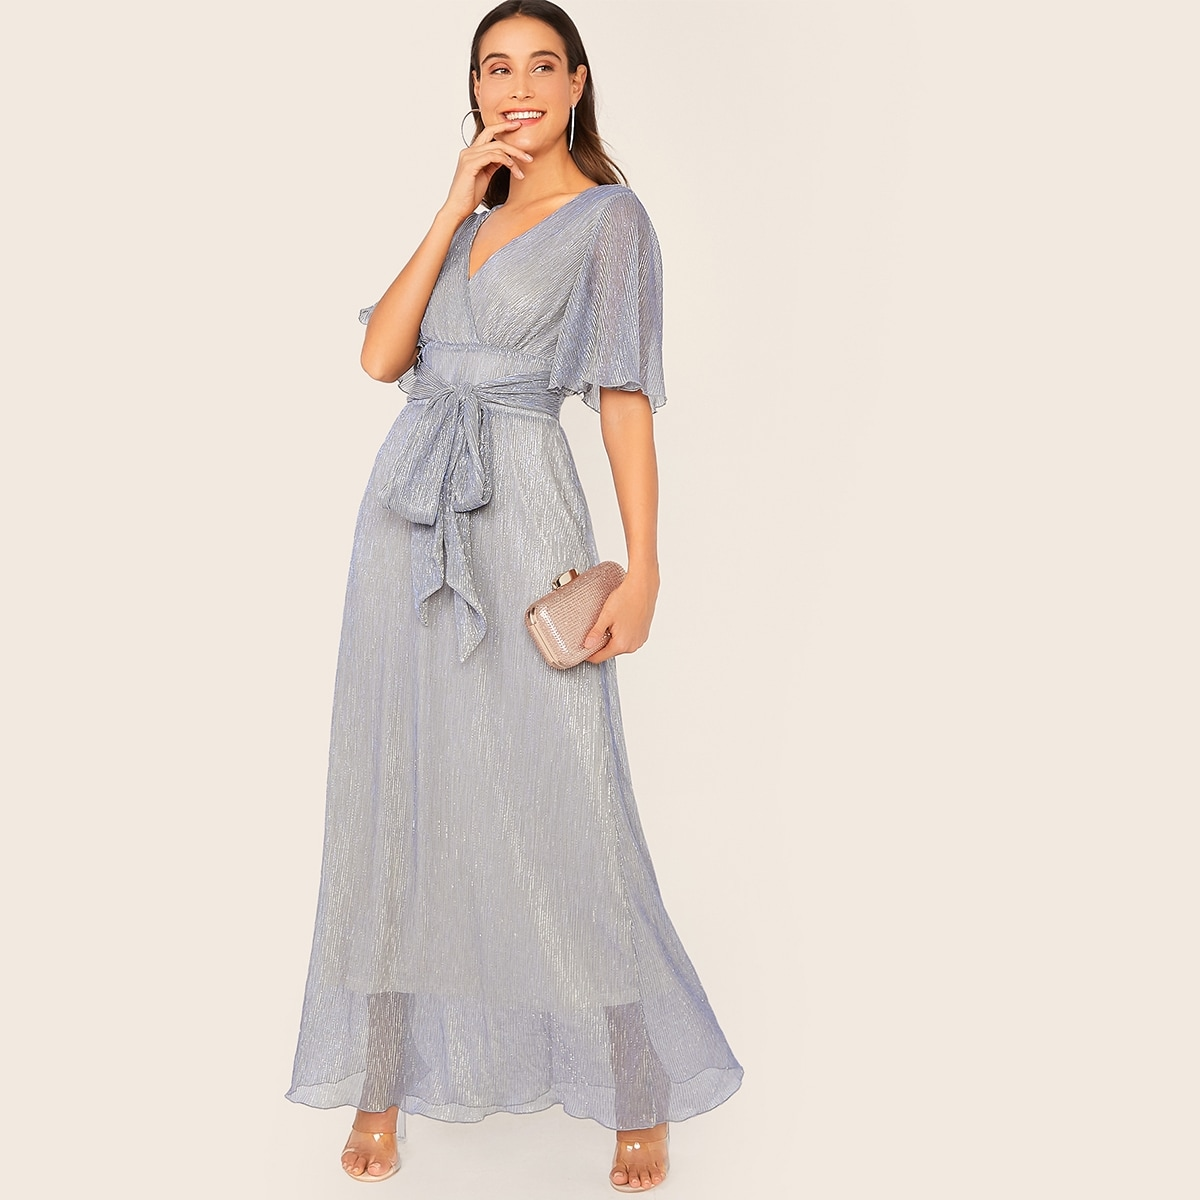 Surplice Neck Shirred Waist Belted Glitter Dress